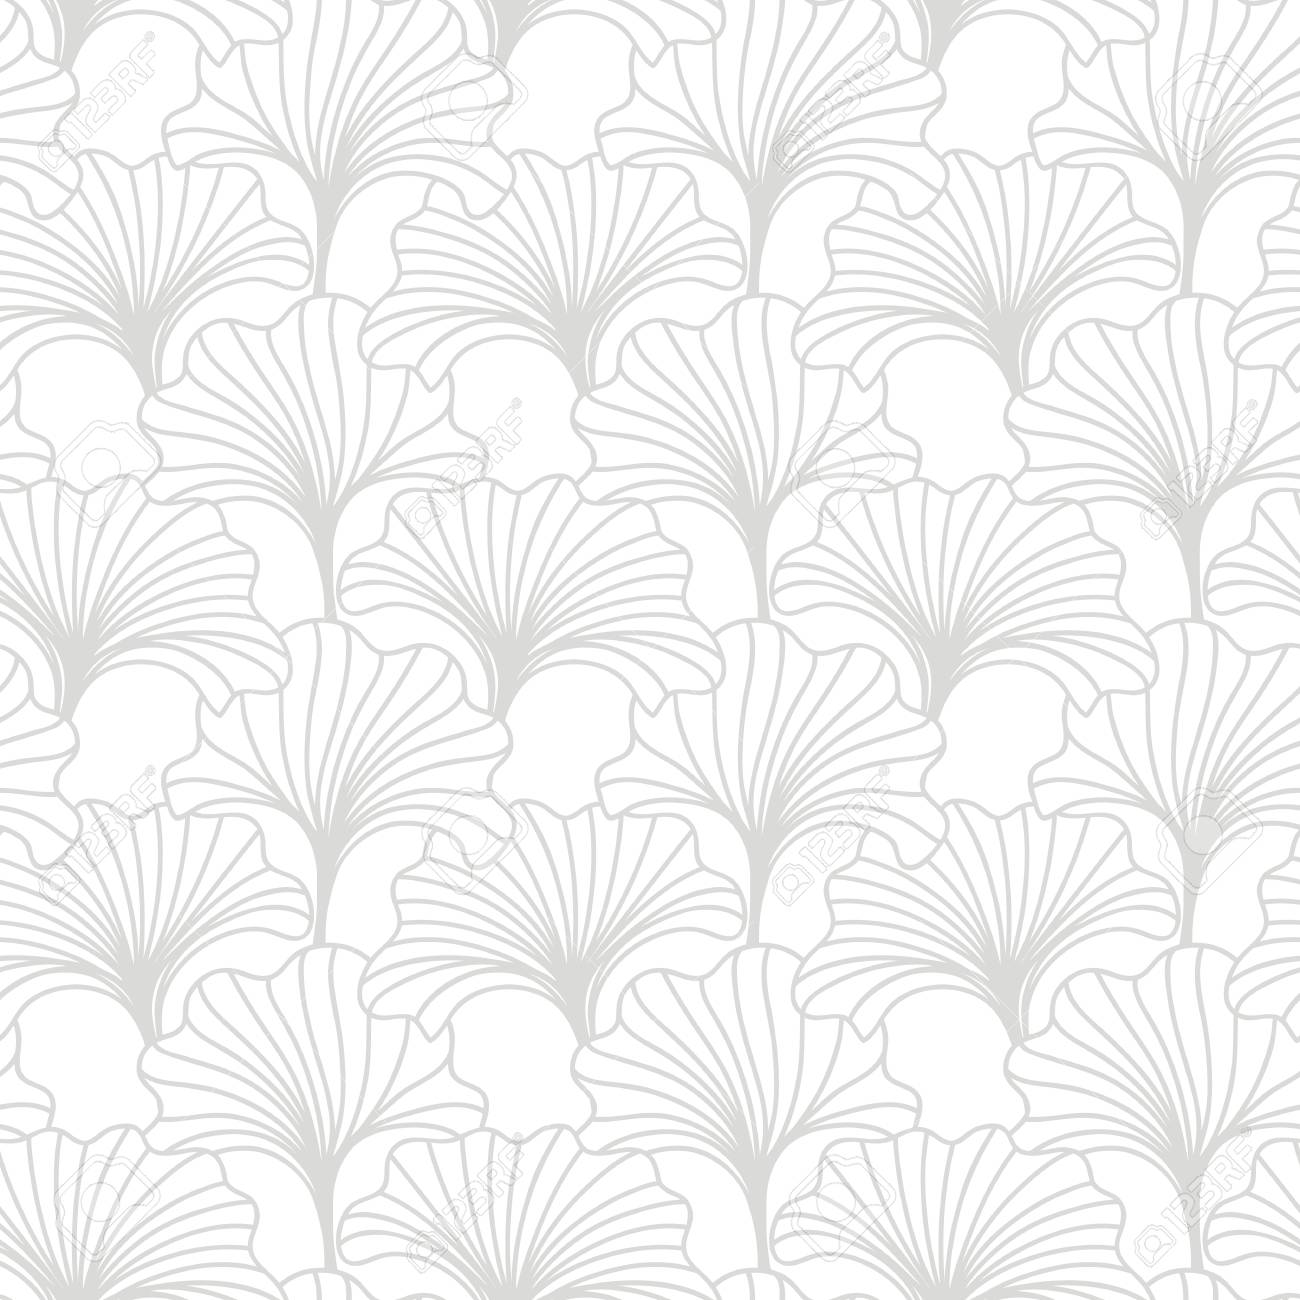 Hand drawn floral seamless pattern. Japanese, Chinese asian nature textile print. Oriental ornament background. Vector illustration - 127302821